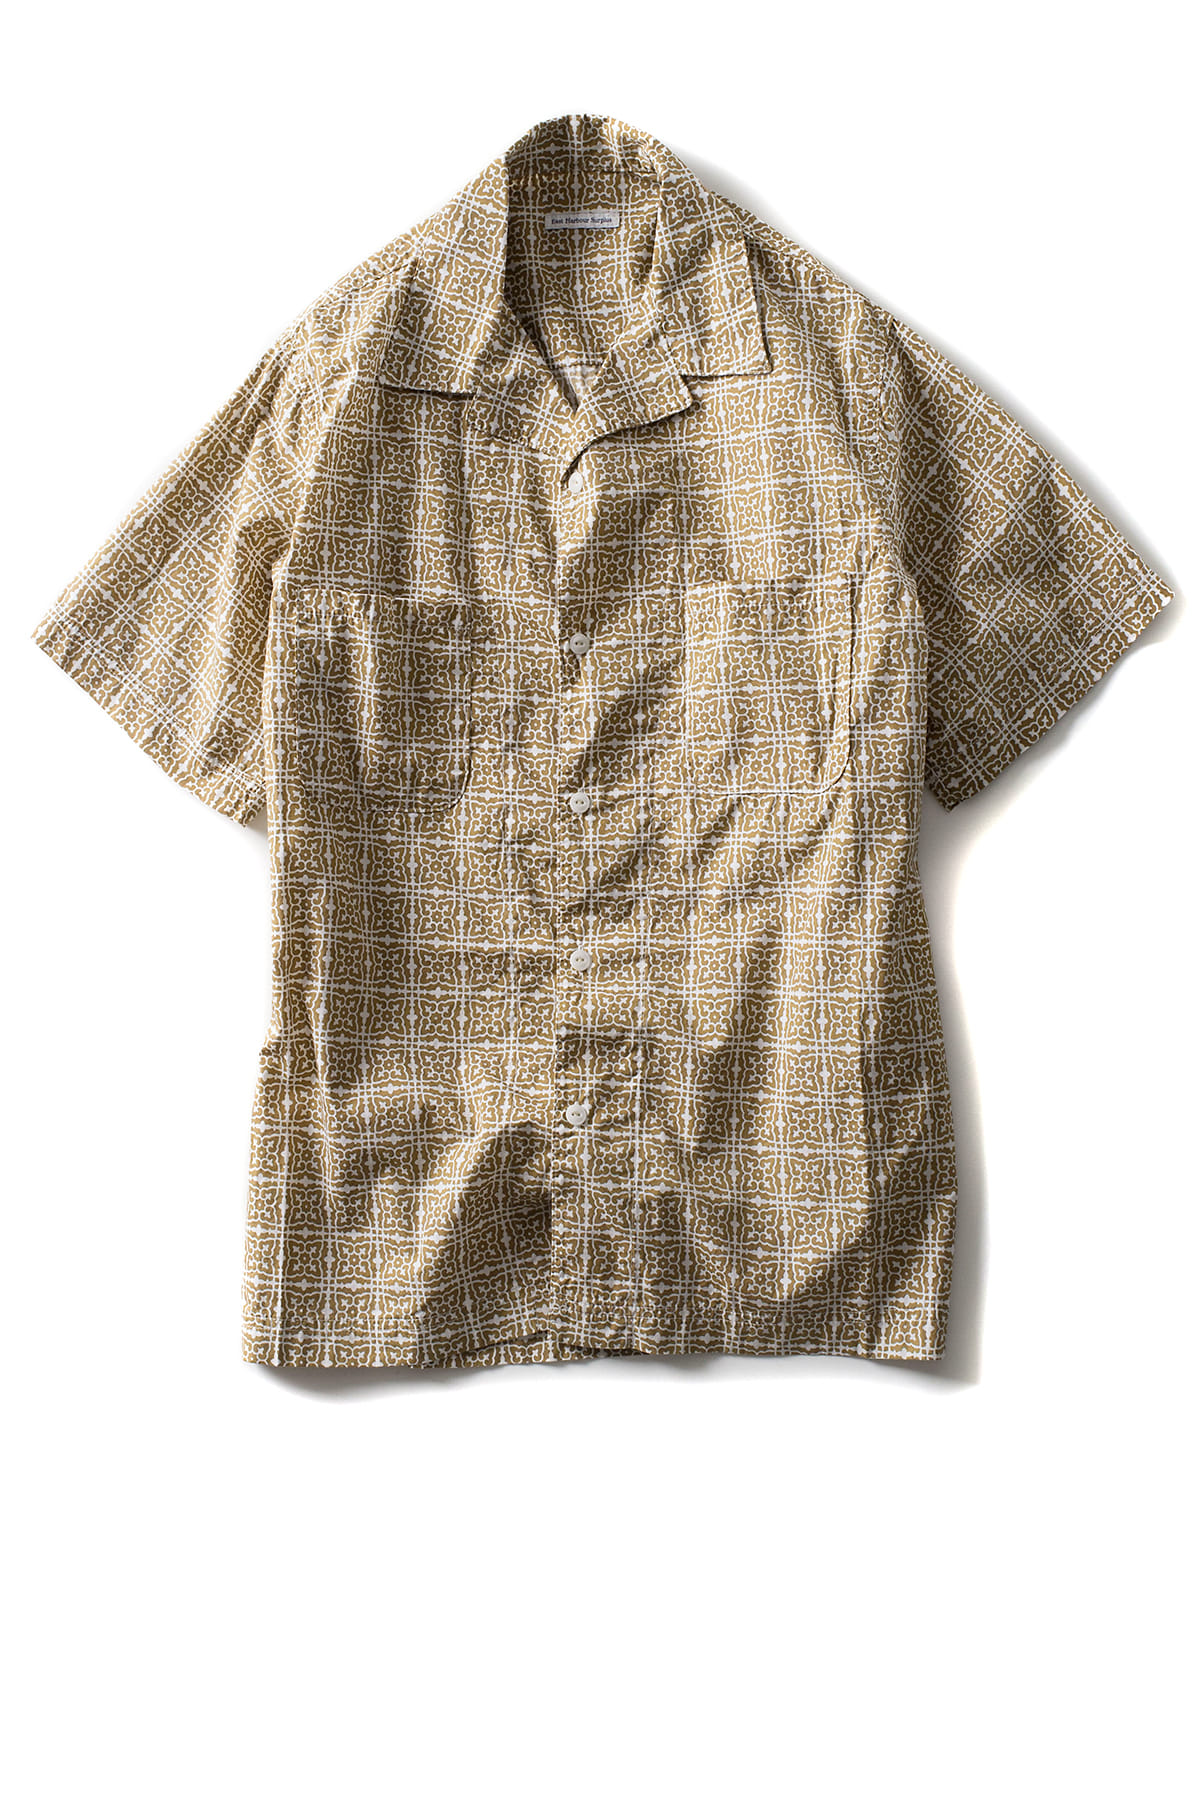 East Harbour Surplus : Miami Shirt (Pattern)